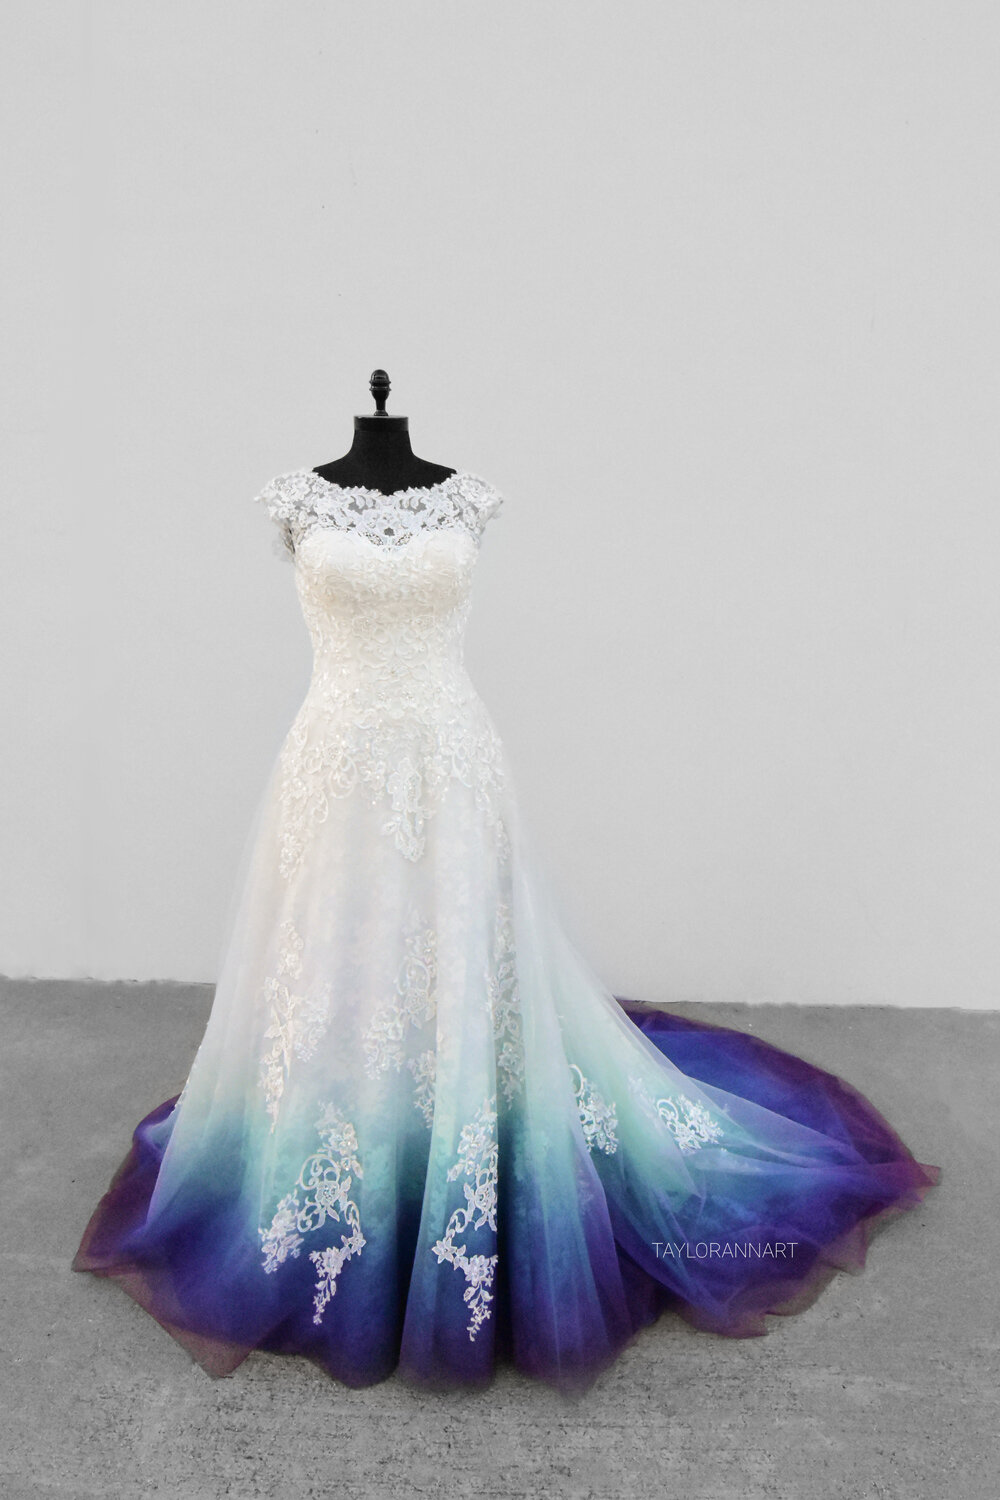 Teal Bridal Gowns Colored By Taylor Ann Art Gallery,Luxury Wedding Princess Corset Princess Wedding Dresses